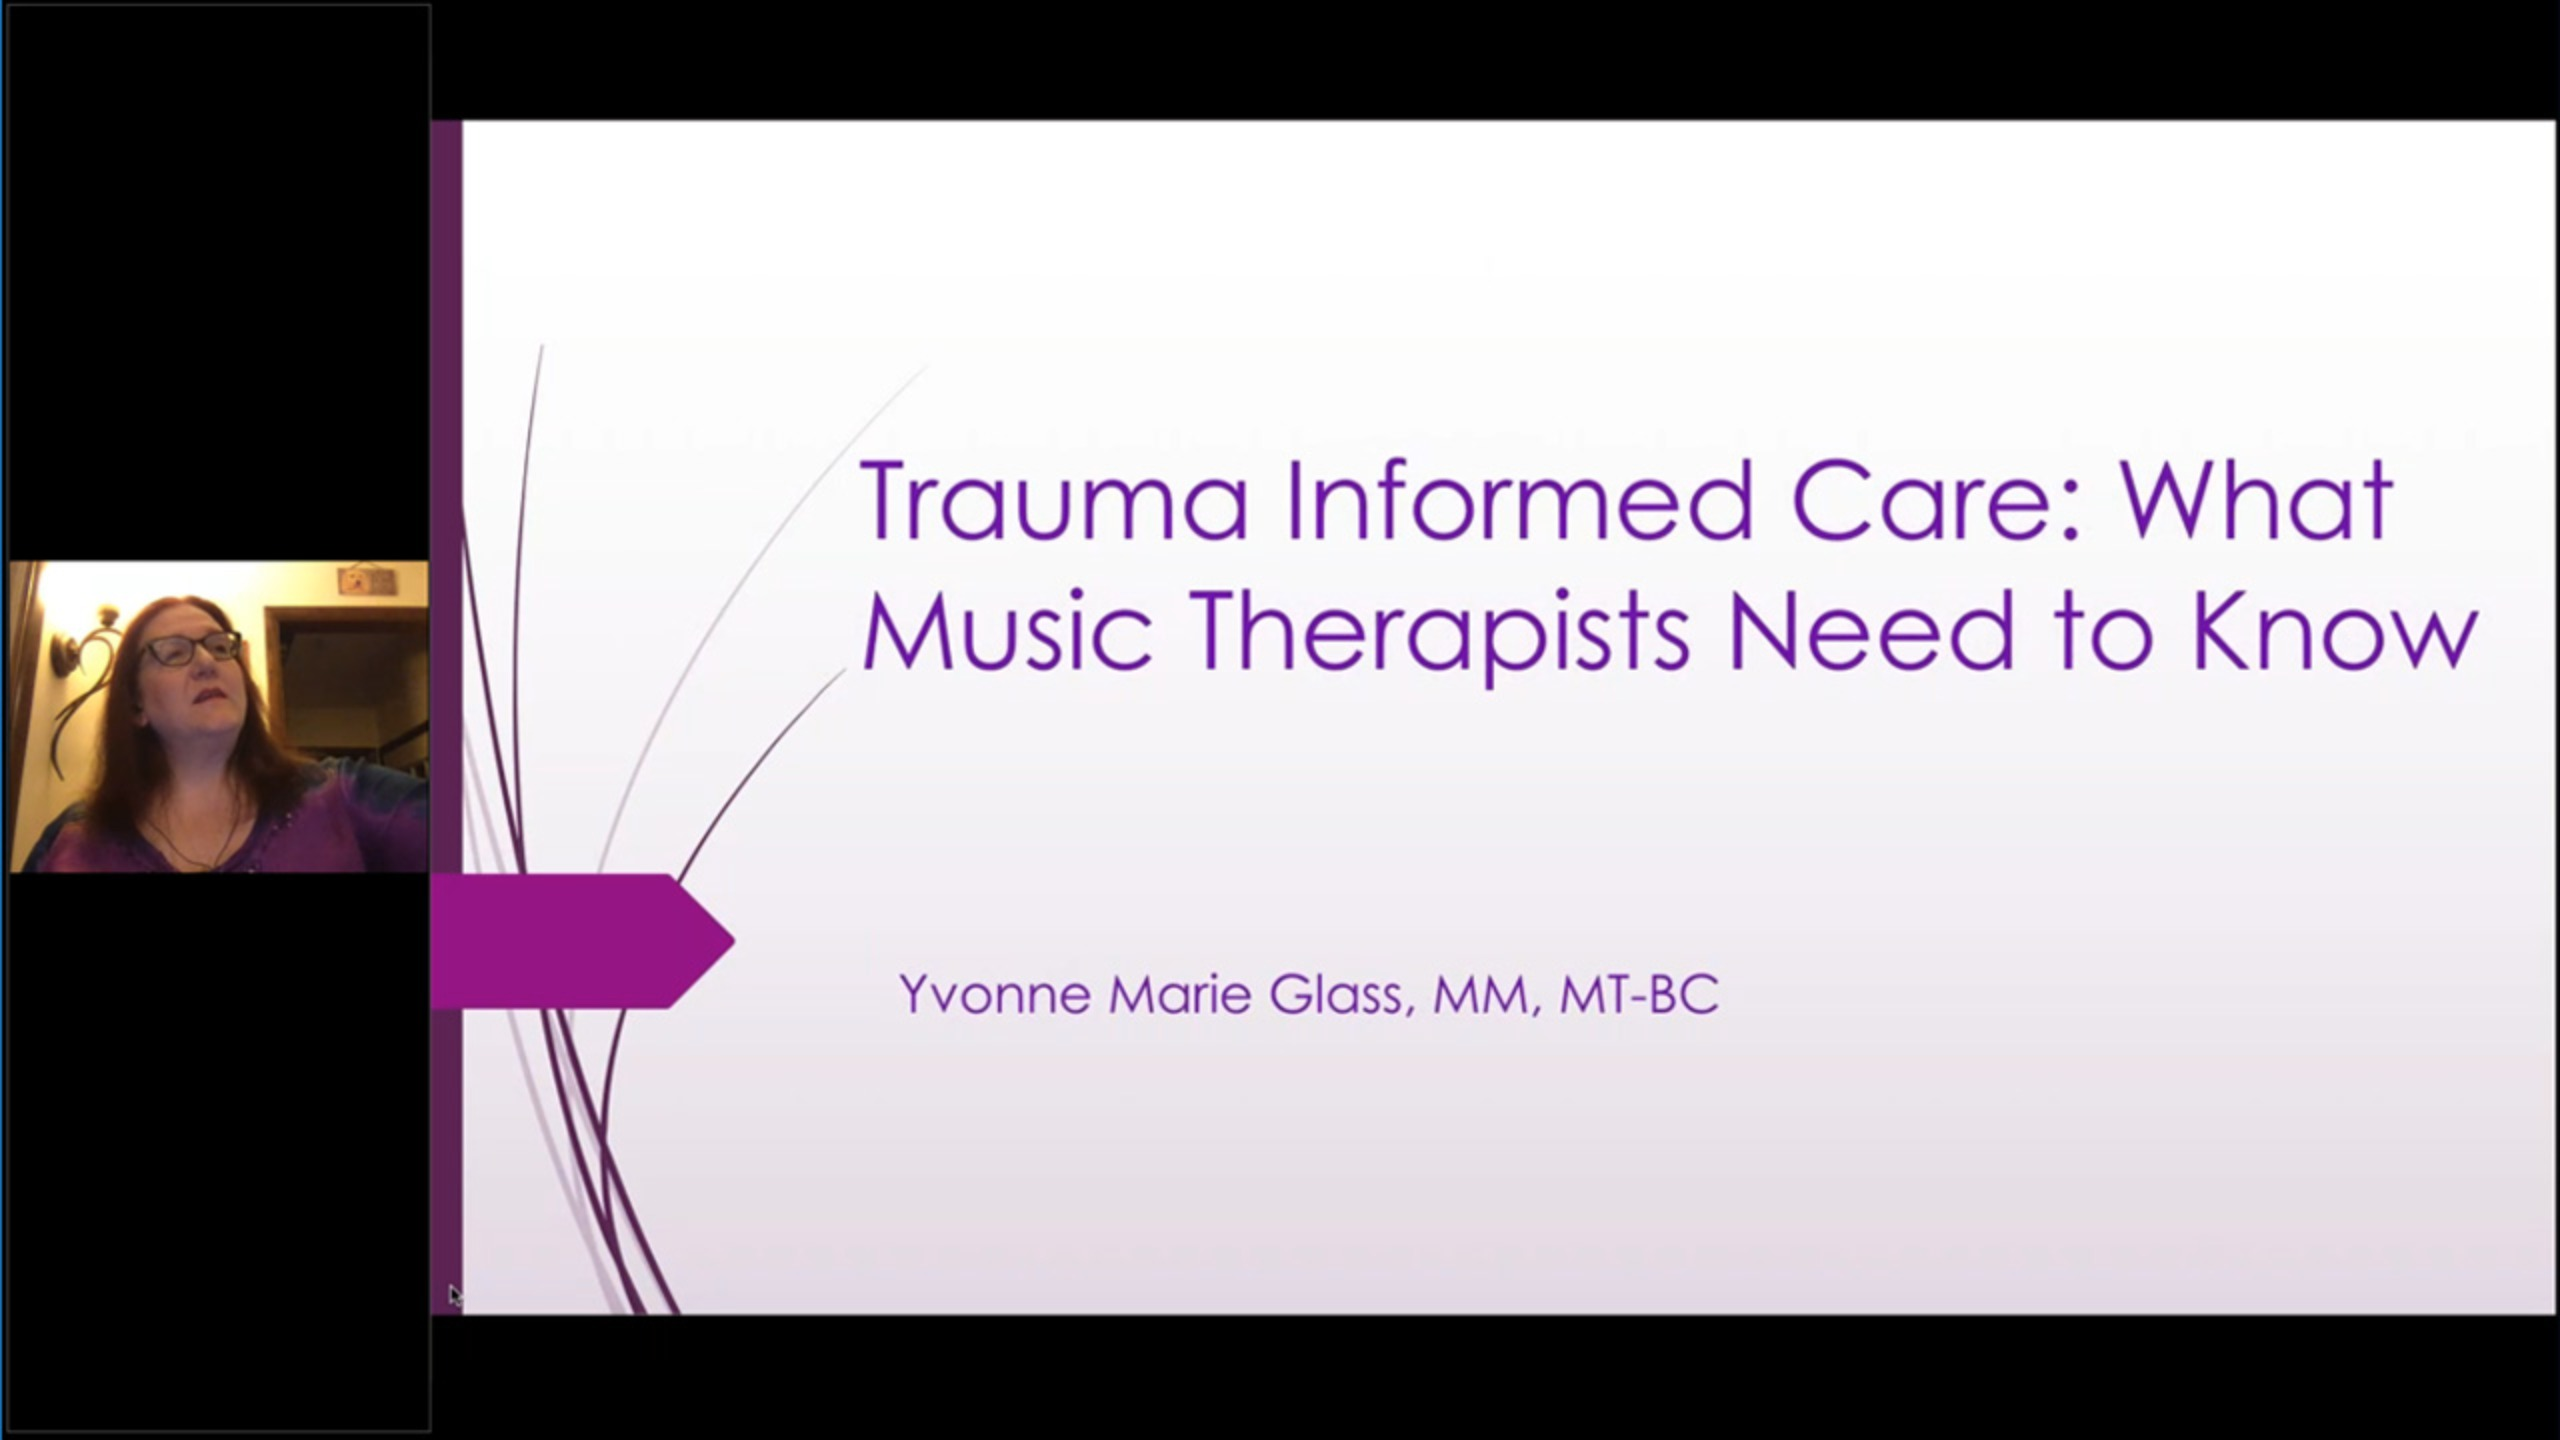 Understanding Trauma Informed Care: What Music Therapists Need to Know